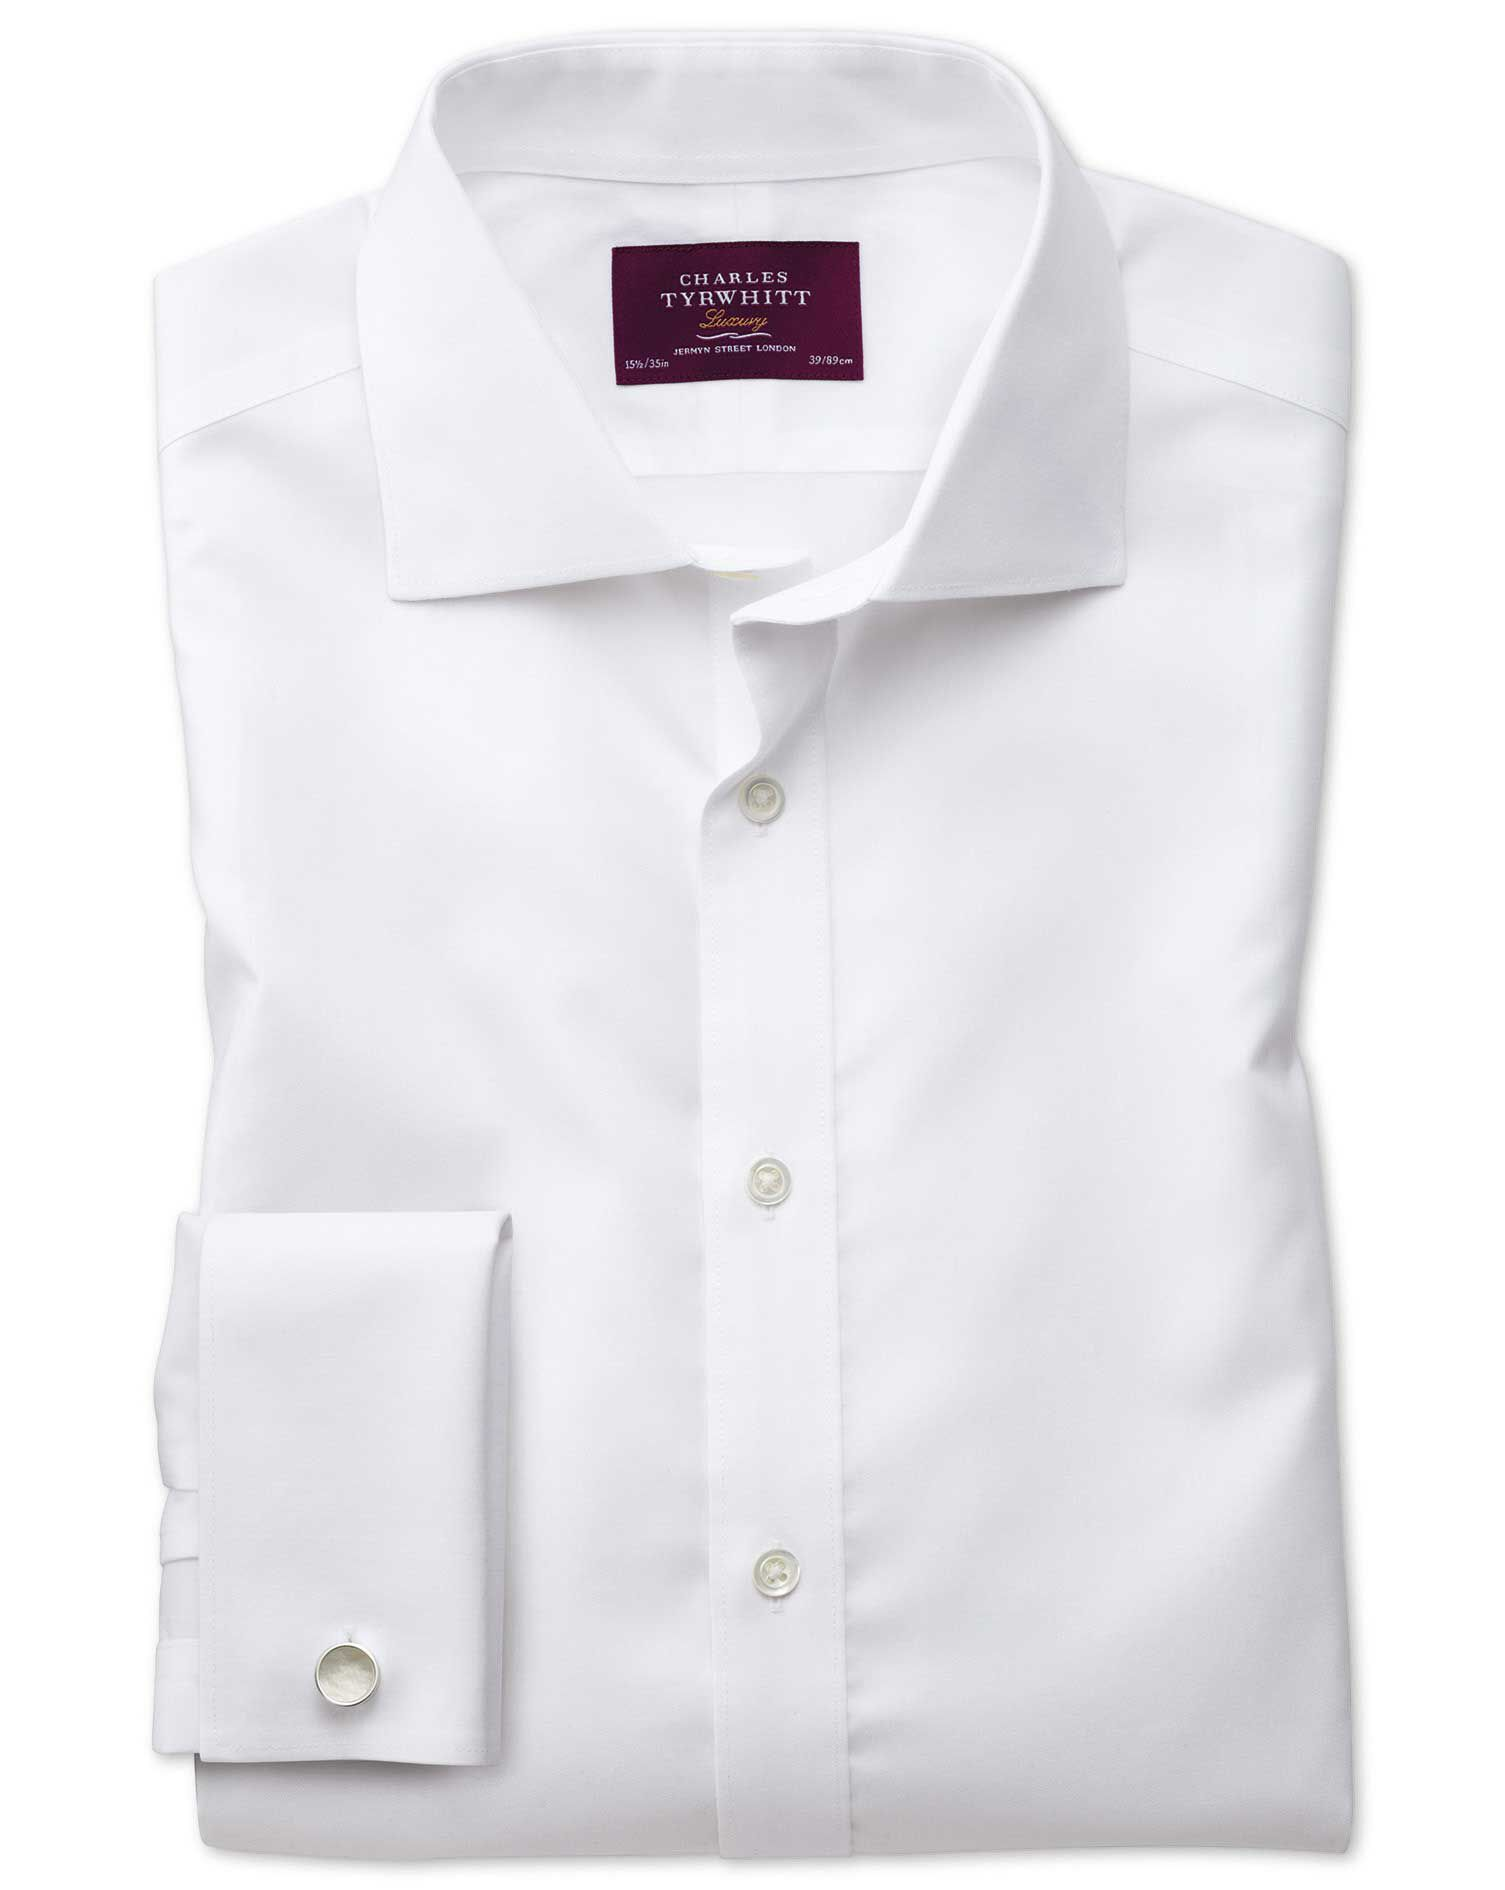 Slim Fit Semi-Cutaway Non-Iron Luxury White Cotton Formal Shirt Double Cuff Size 16/36 by Charles Ty